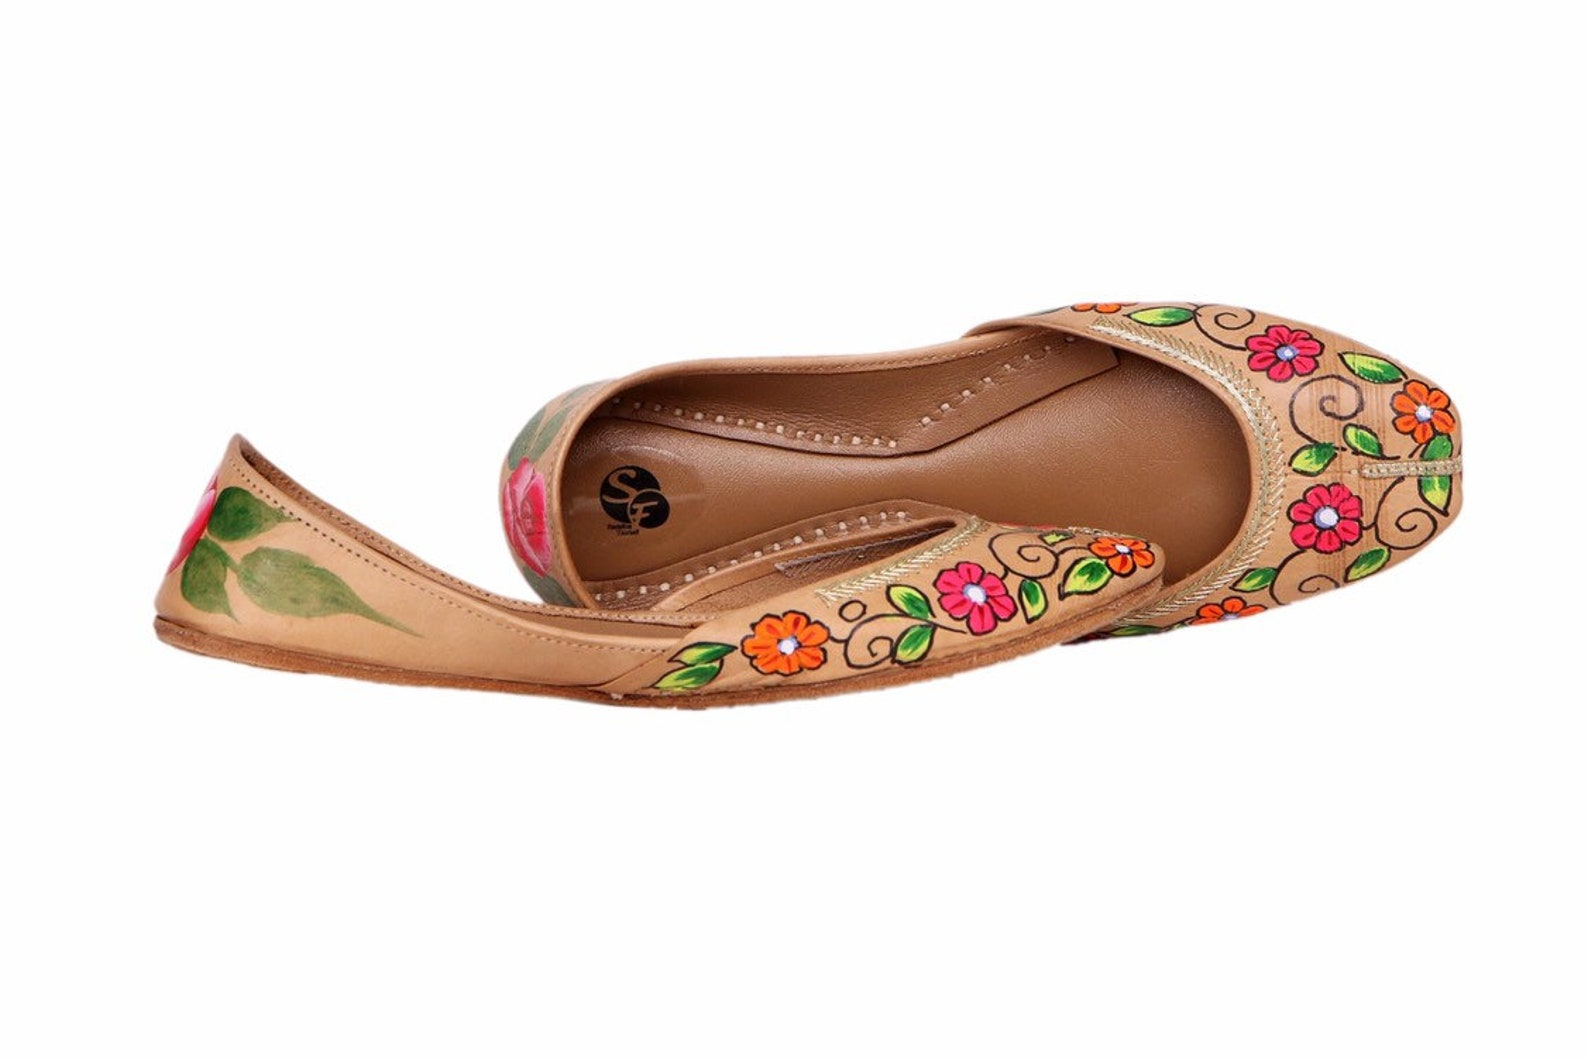 beige handpainted women flat shoes ballet flats handpainted khussa juti ethnic painted shoes handpainted mojari indian juttis